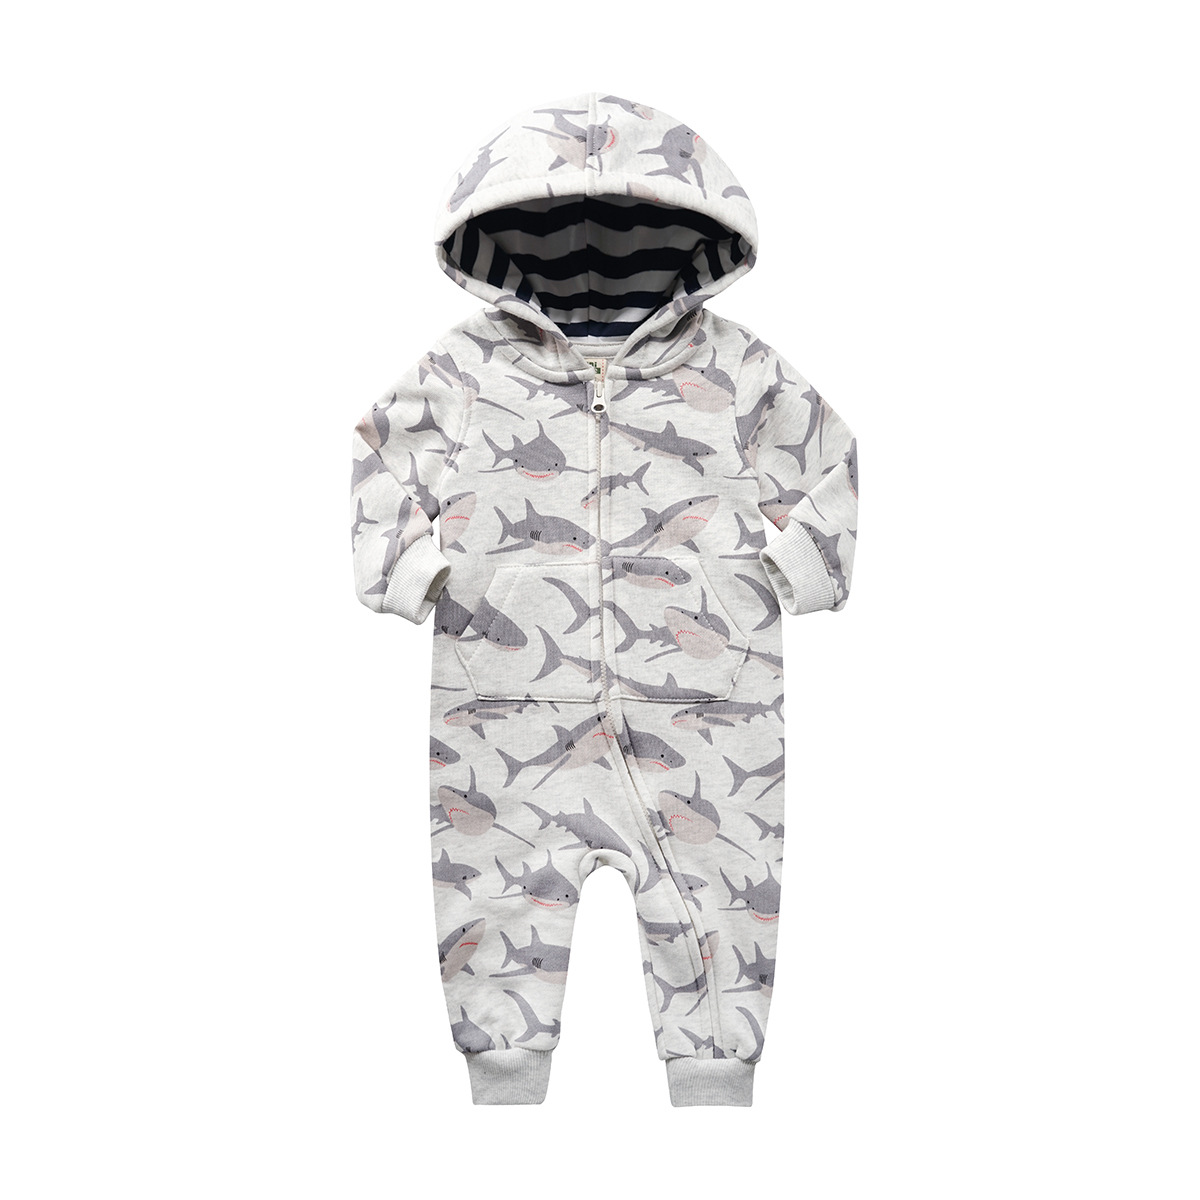 2019 orangemom official store baby boy clothing grey infant baby clothing cotton hoodies jumpsuit children   rompers   for babies